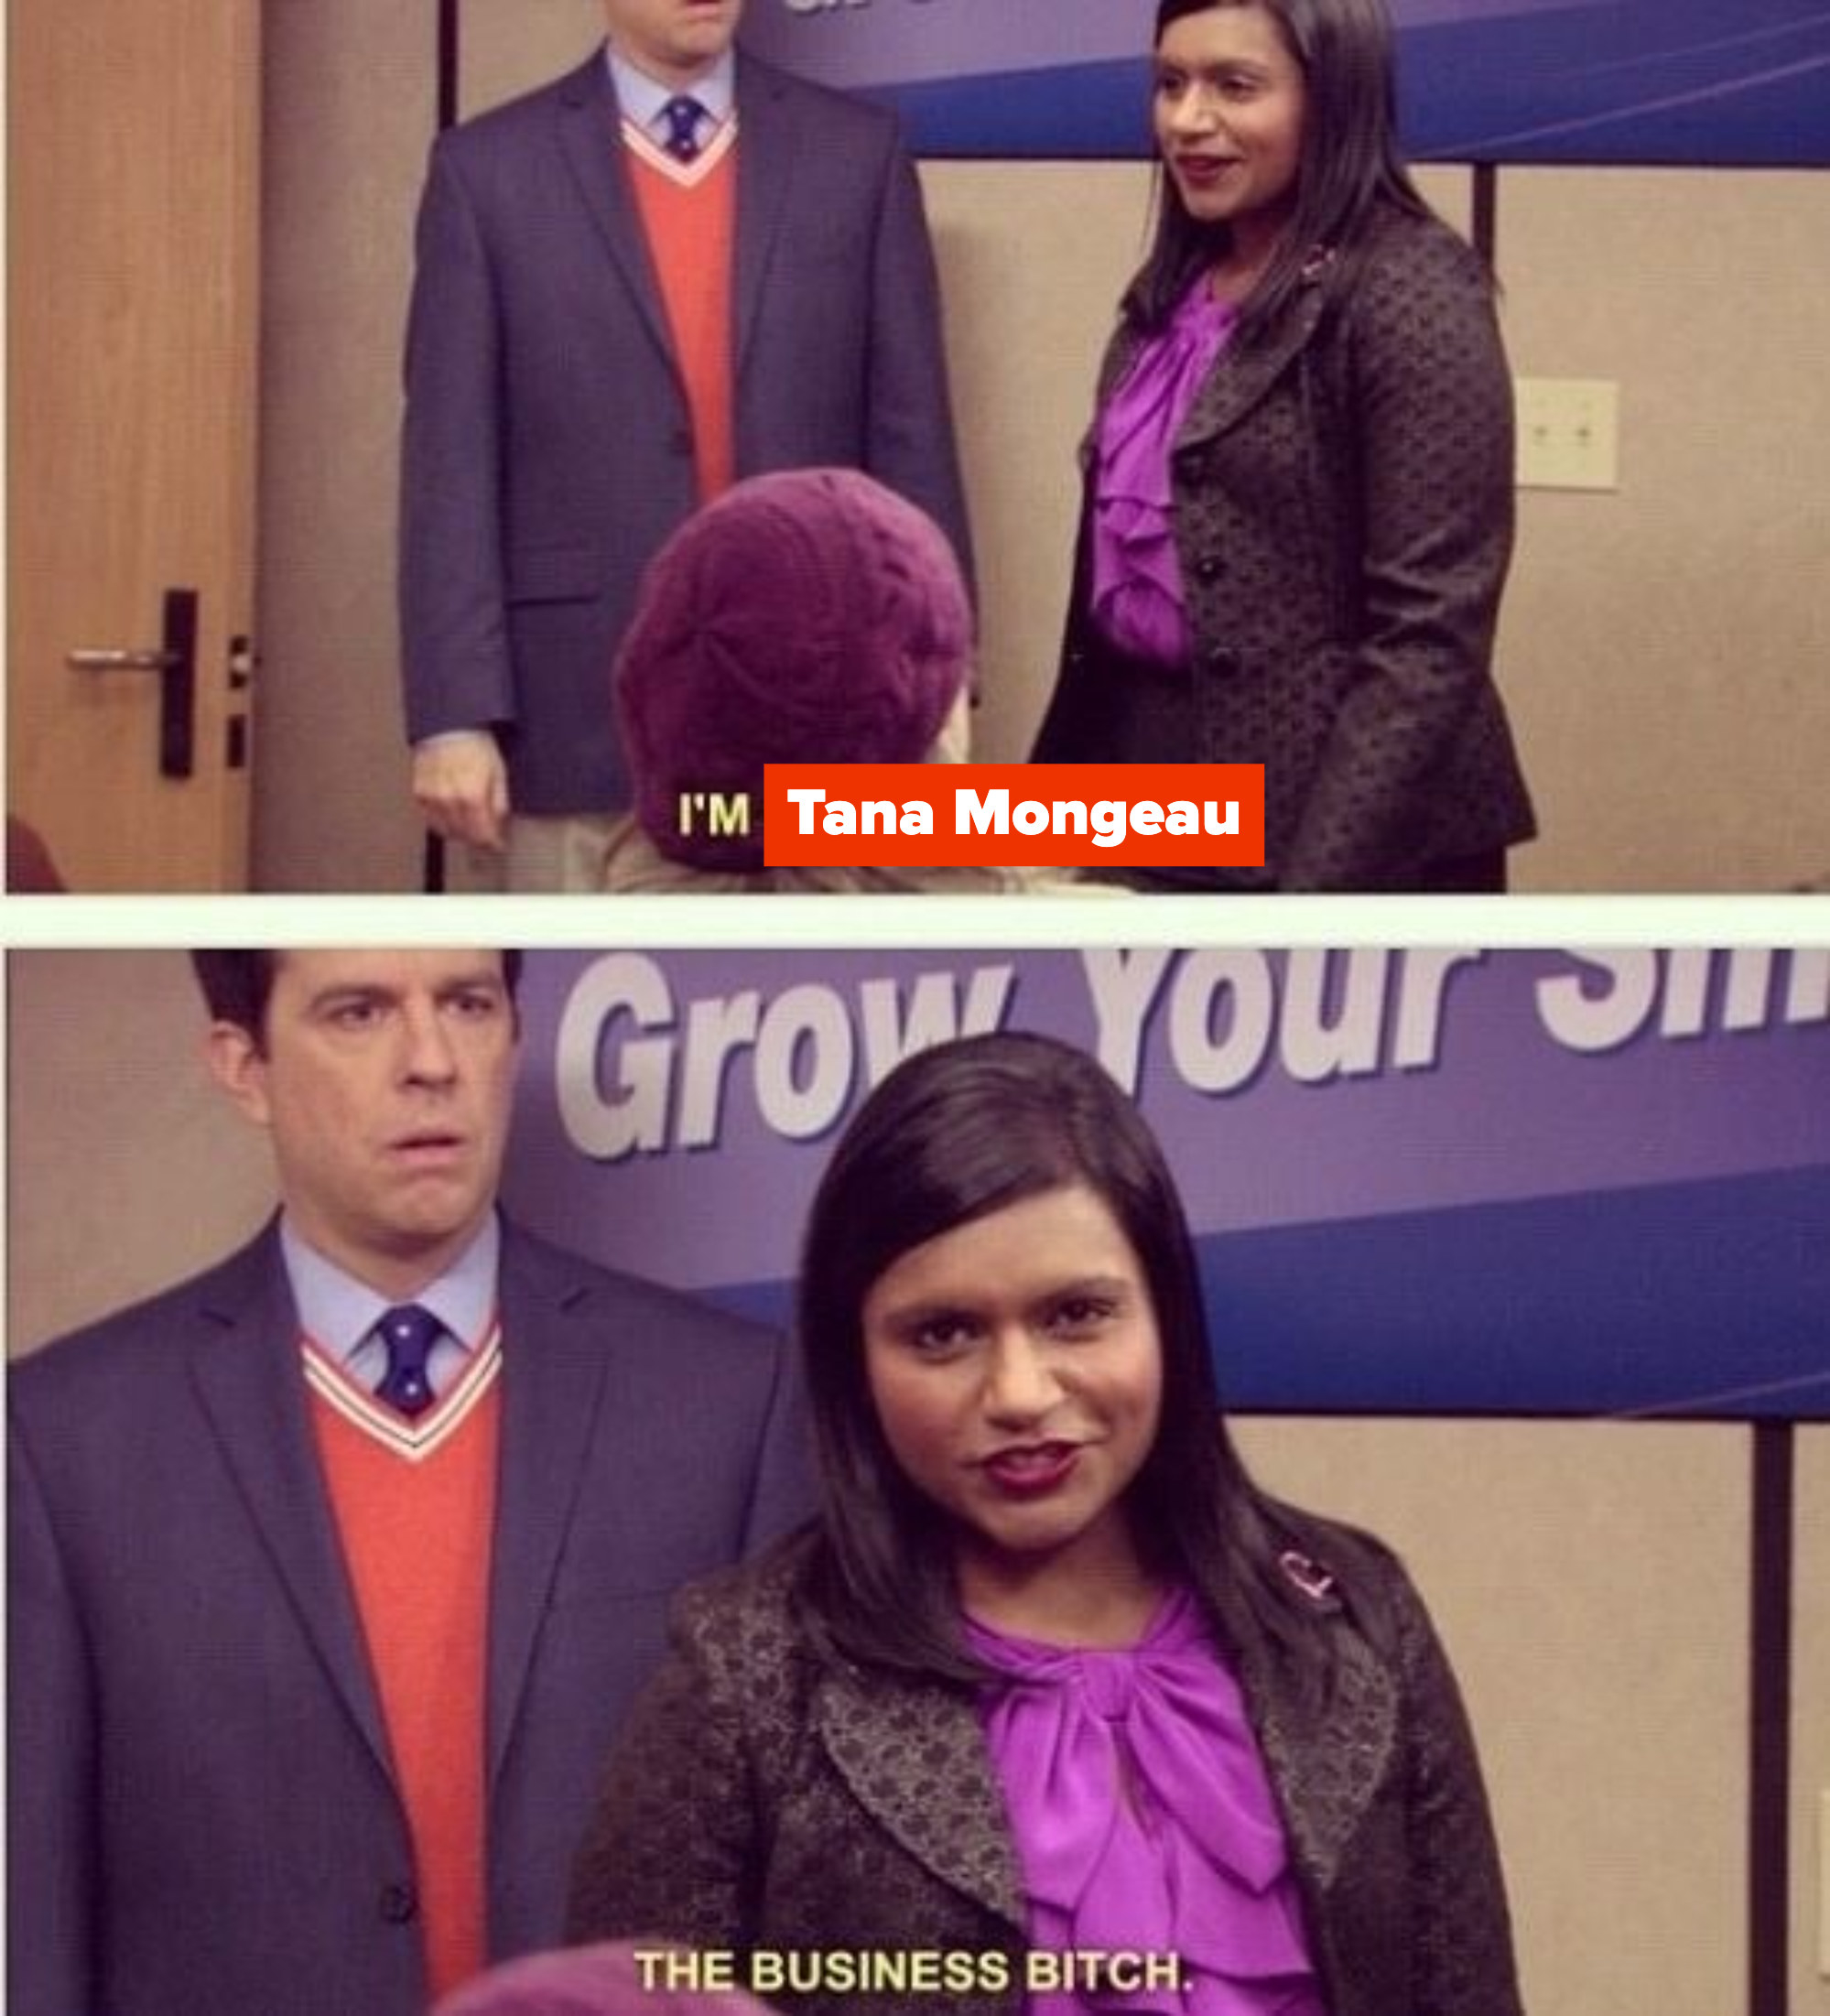 """Kelly Kapoor entering the room and saying that she's """"the business bitch"""""""